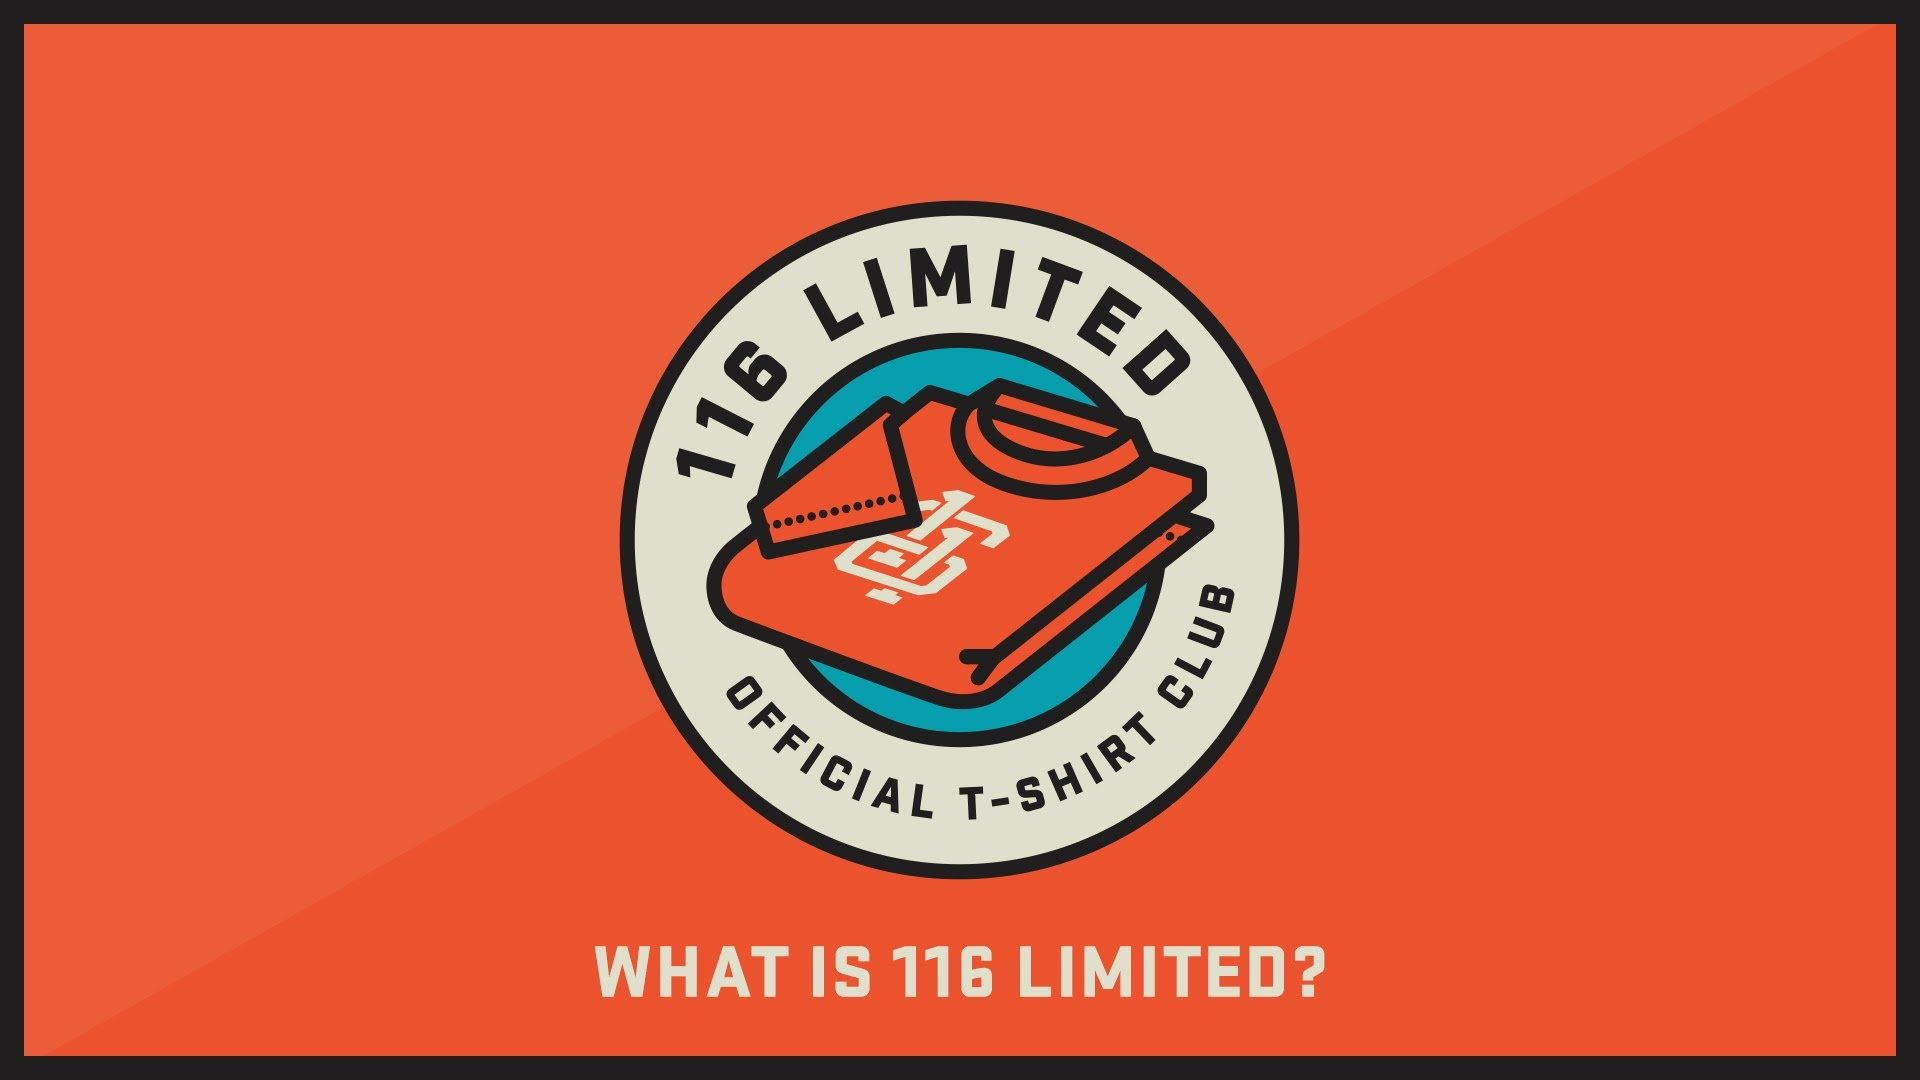 116 Limited The Official T Shirt Club How It Works Club Shirts Tee Design T Shirt